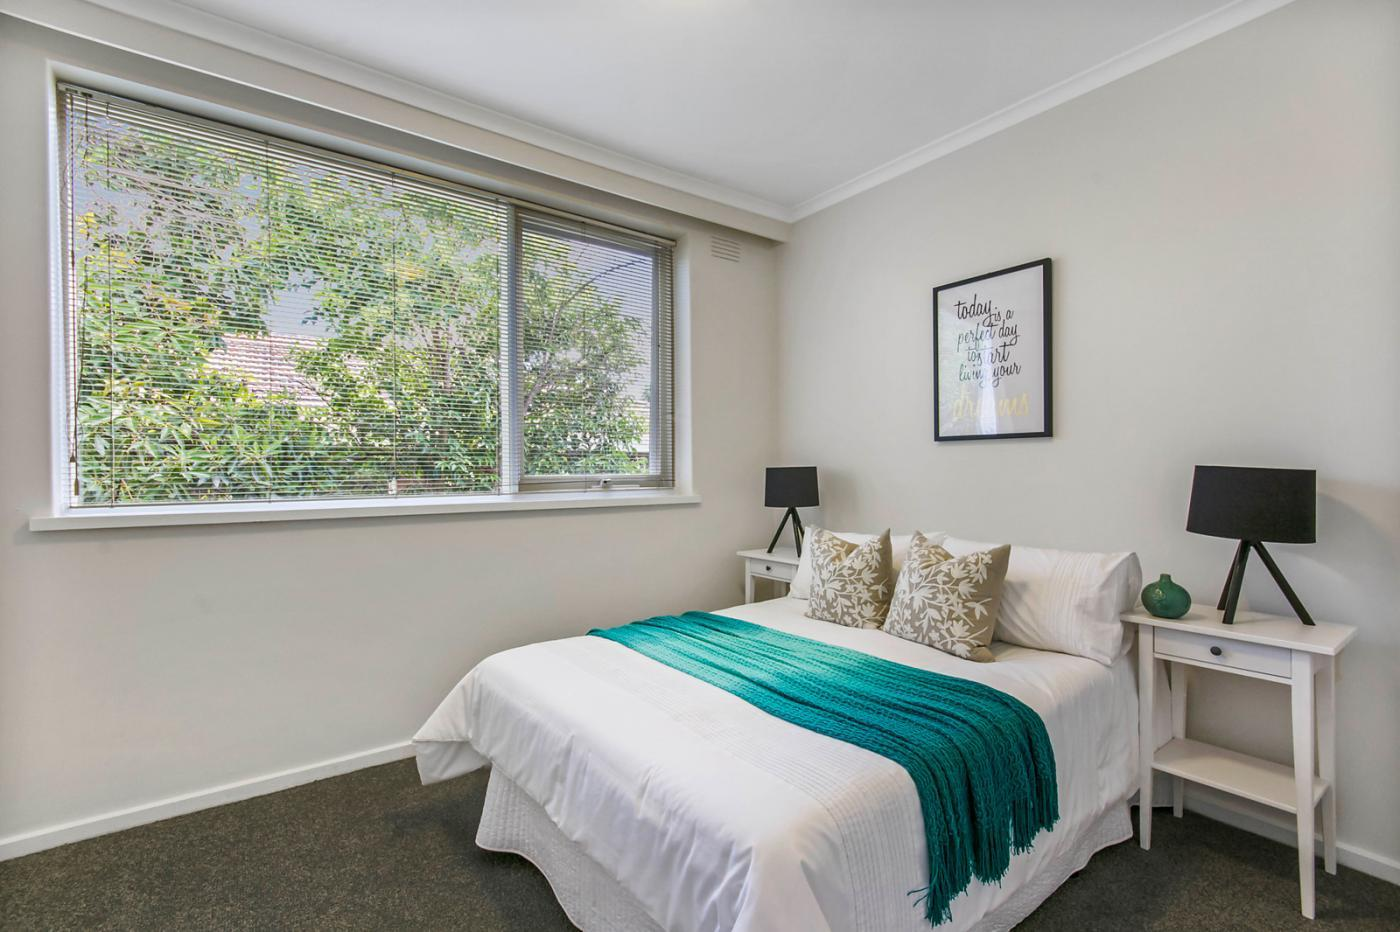 71517 malvern road glen iris vic 3146 sale rental history 71517 malvern road glen iris vic 3146 sale rental history property 360 solutioingenieria Images